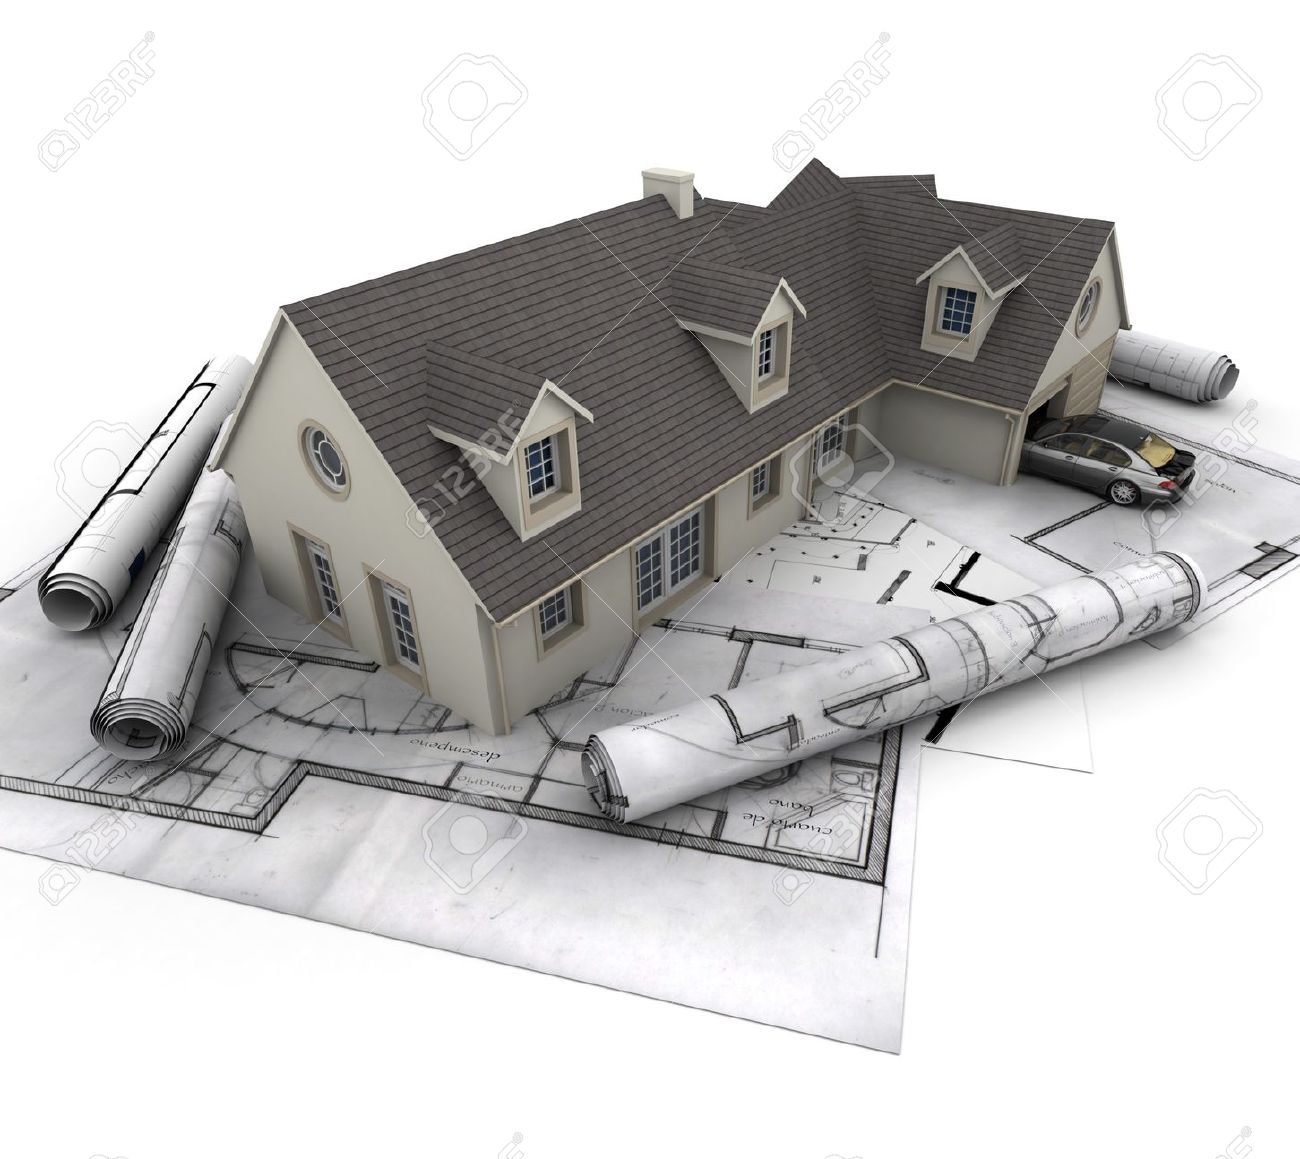 3d rendering of a house with garage on top of blueprints stock 3d rendering of a house with garage on top of blueprints stock photo 16036558 malvernweather Images